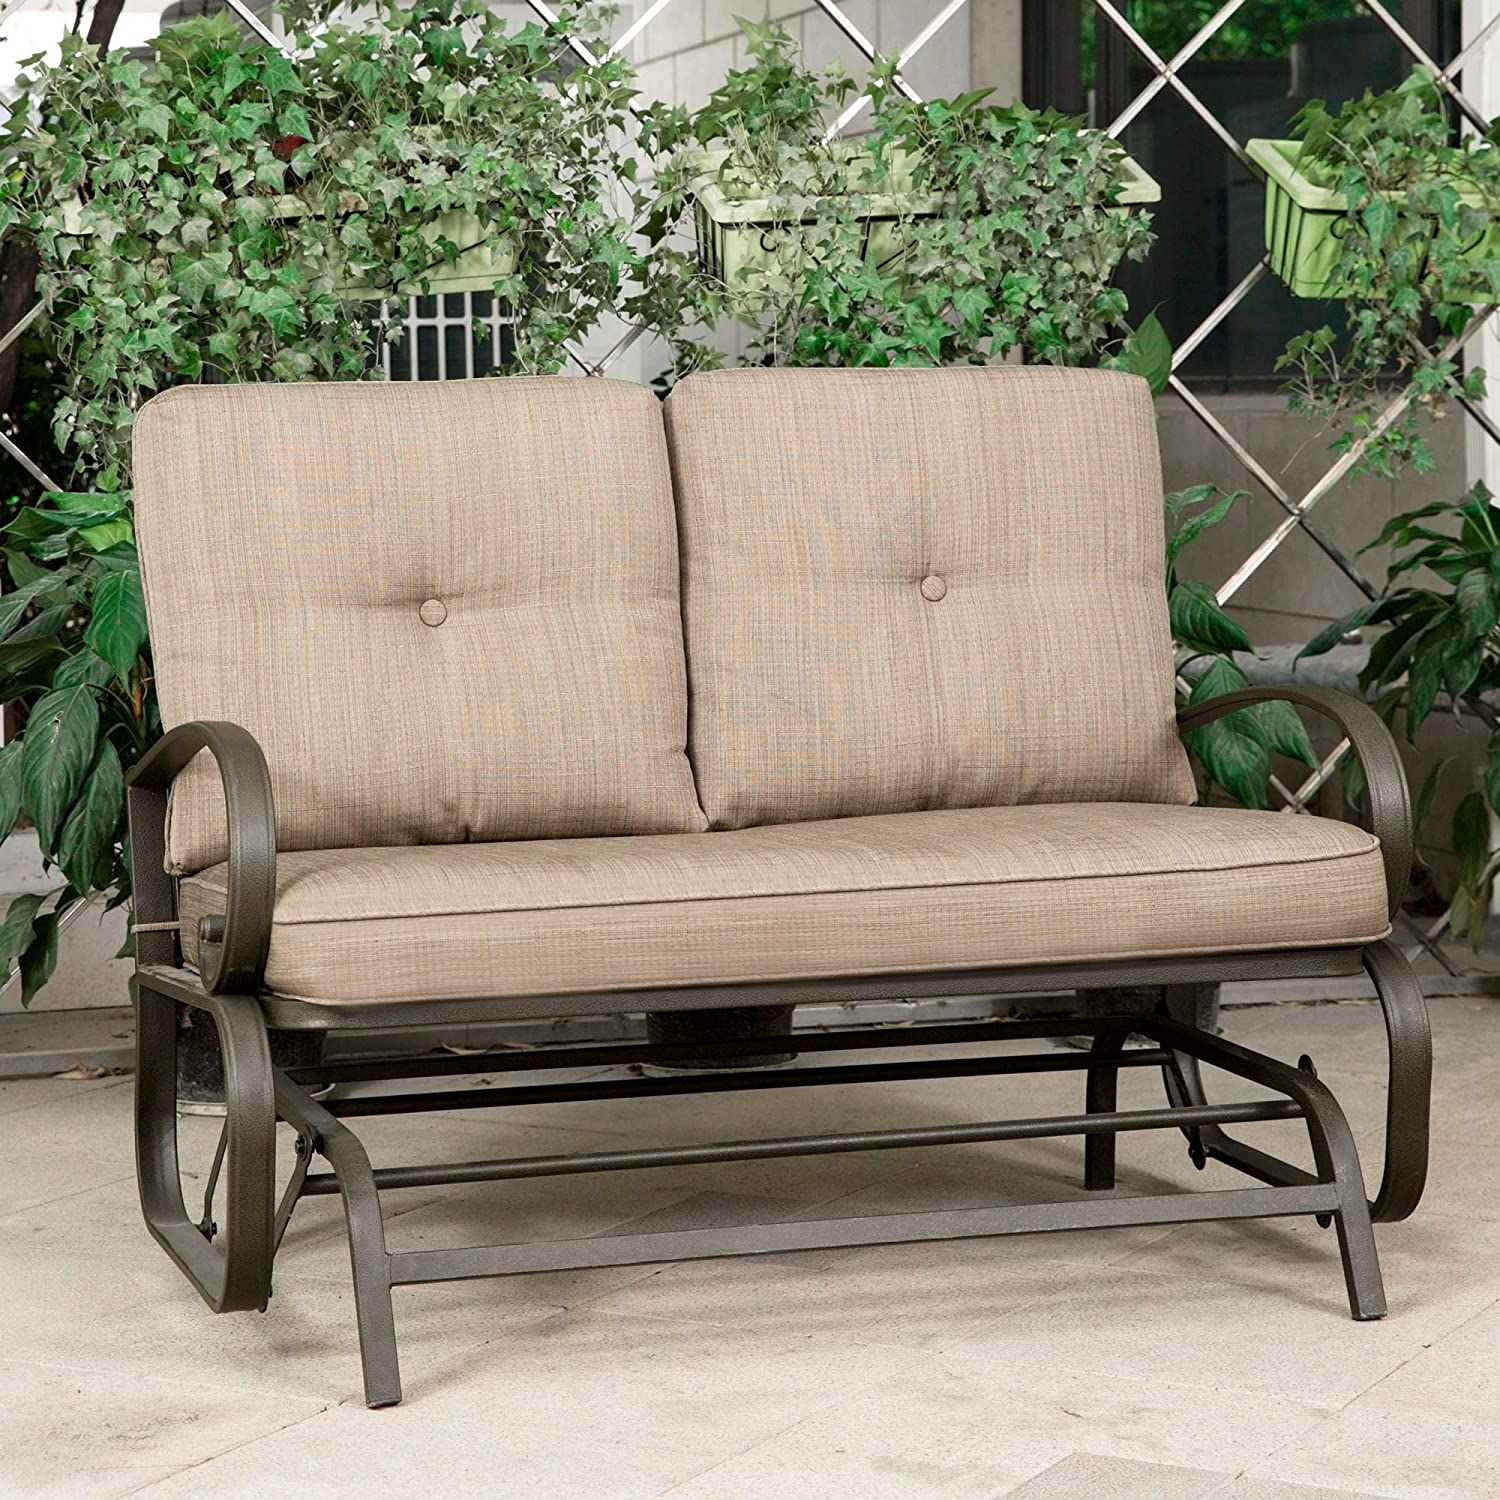 Magnificent Cloud Mountain Patio Glider Bench Outdoor Cushioned 2 Person Swing Loveseat Rocking Seating Patio Swing Rocker Lounge Glider Chair Gradient Brown Dailytribune Chair Design For Home Dailytribuneorg